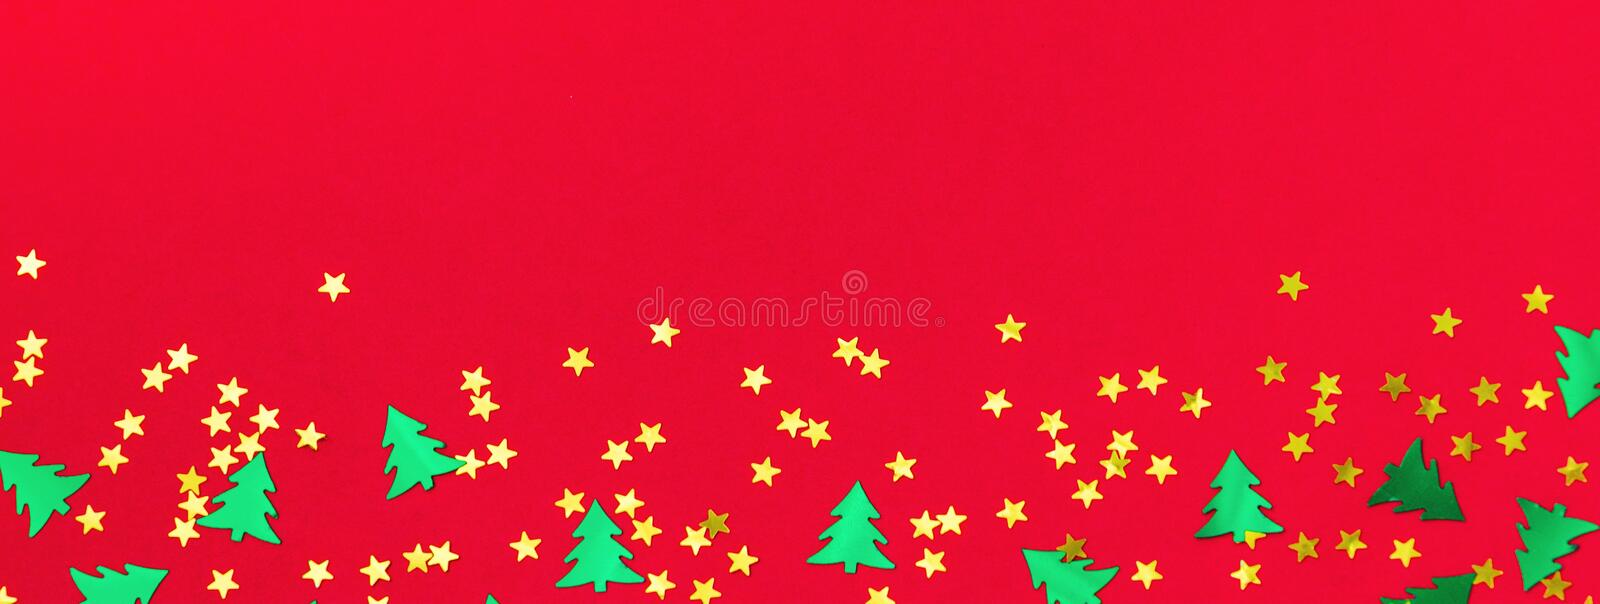 Christmas and Happy new year banner. Green metallic foil christmas trees and gold stars confetti on red background. Simple holiday design template. Frame with royalty free stock photography